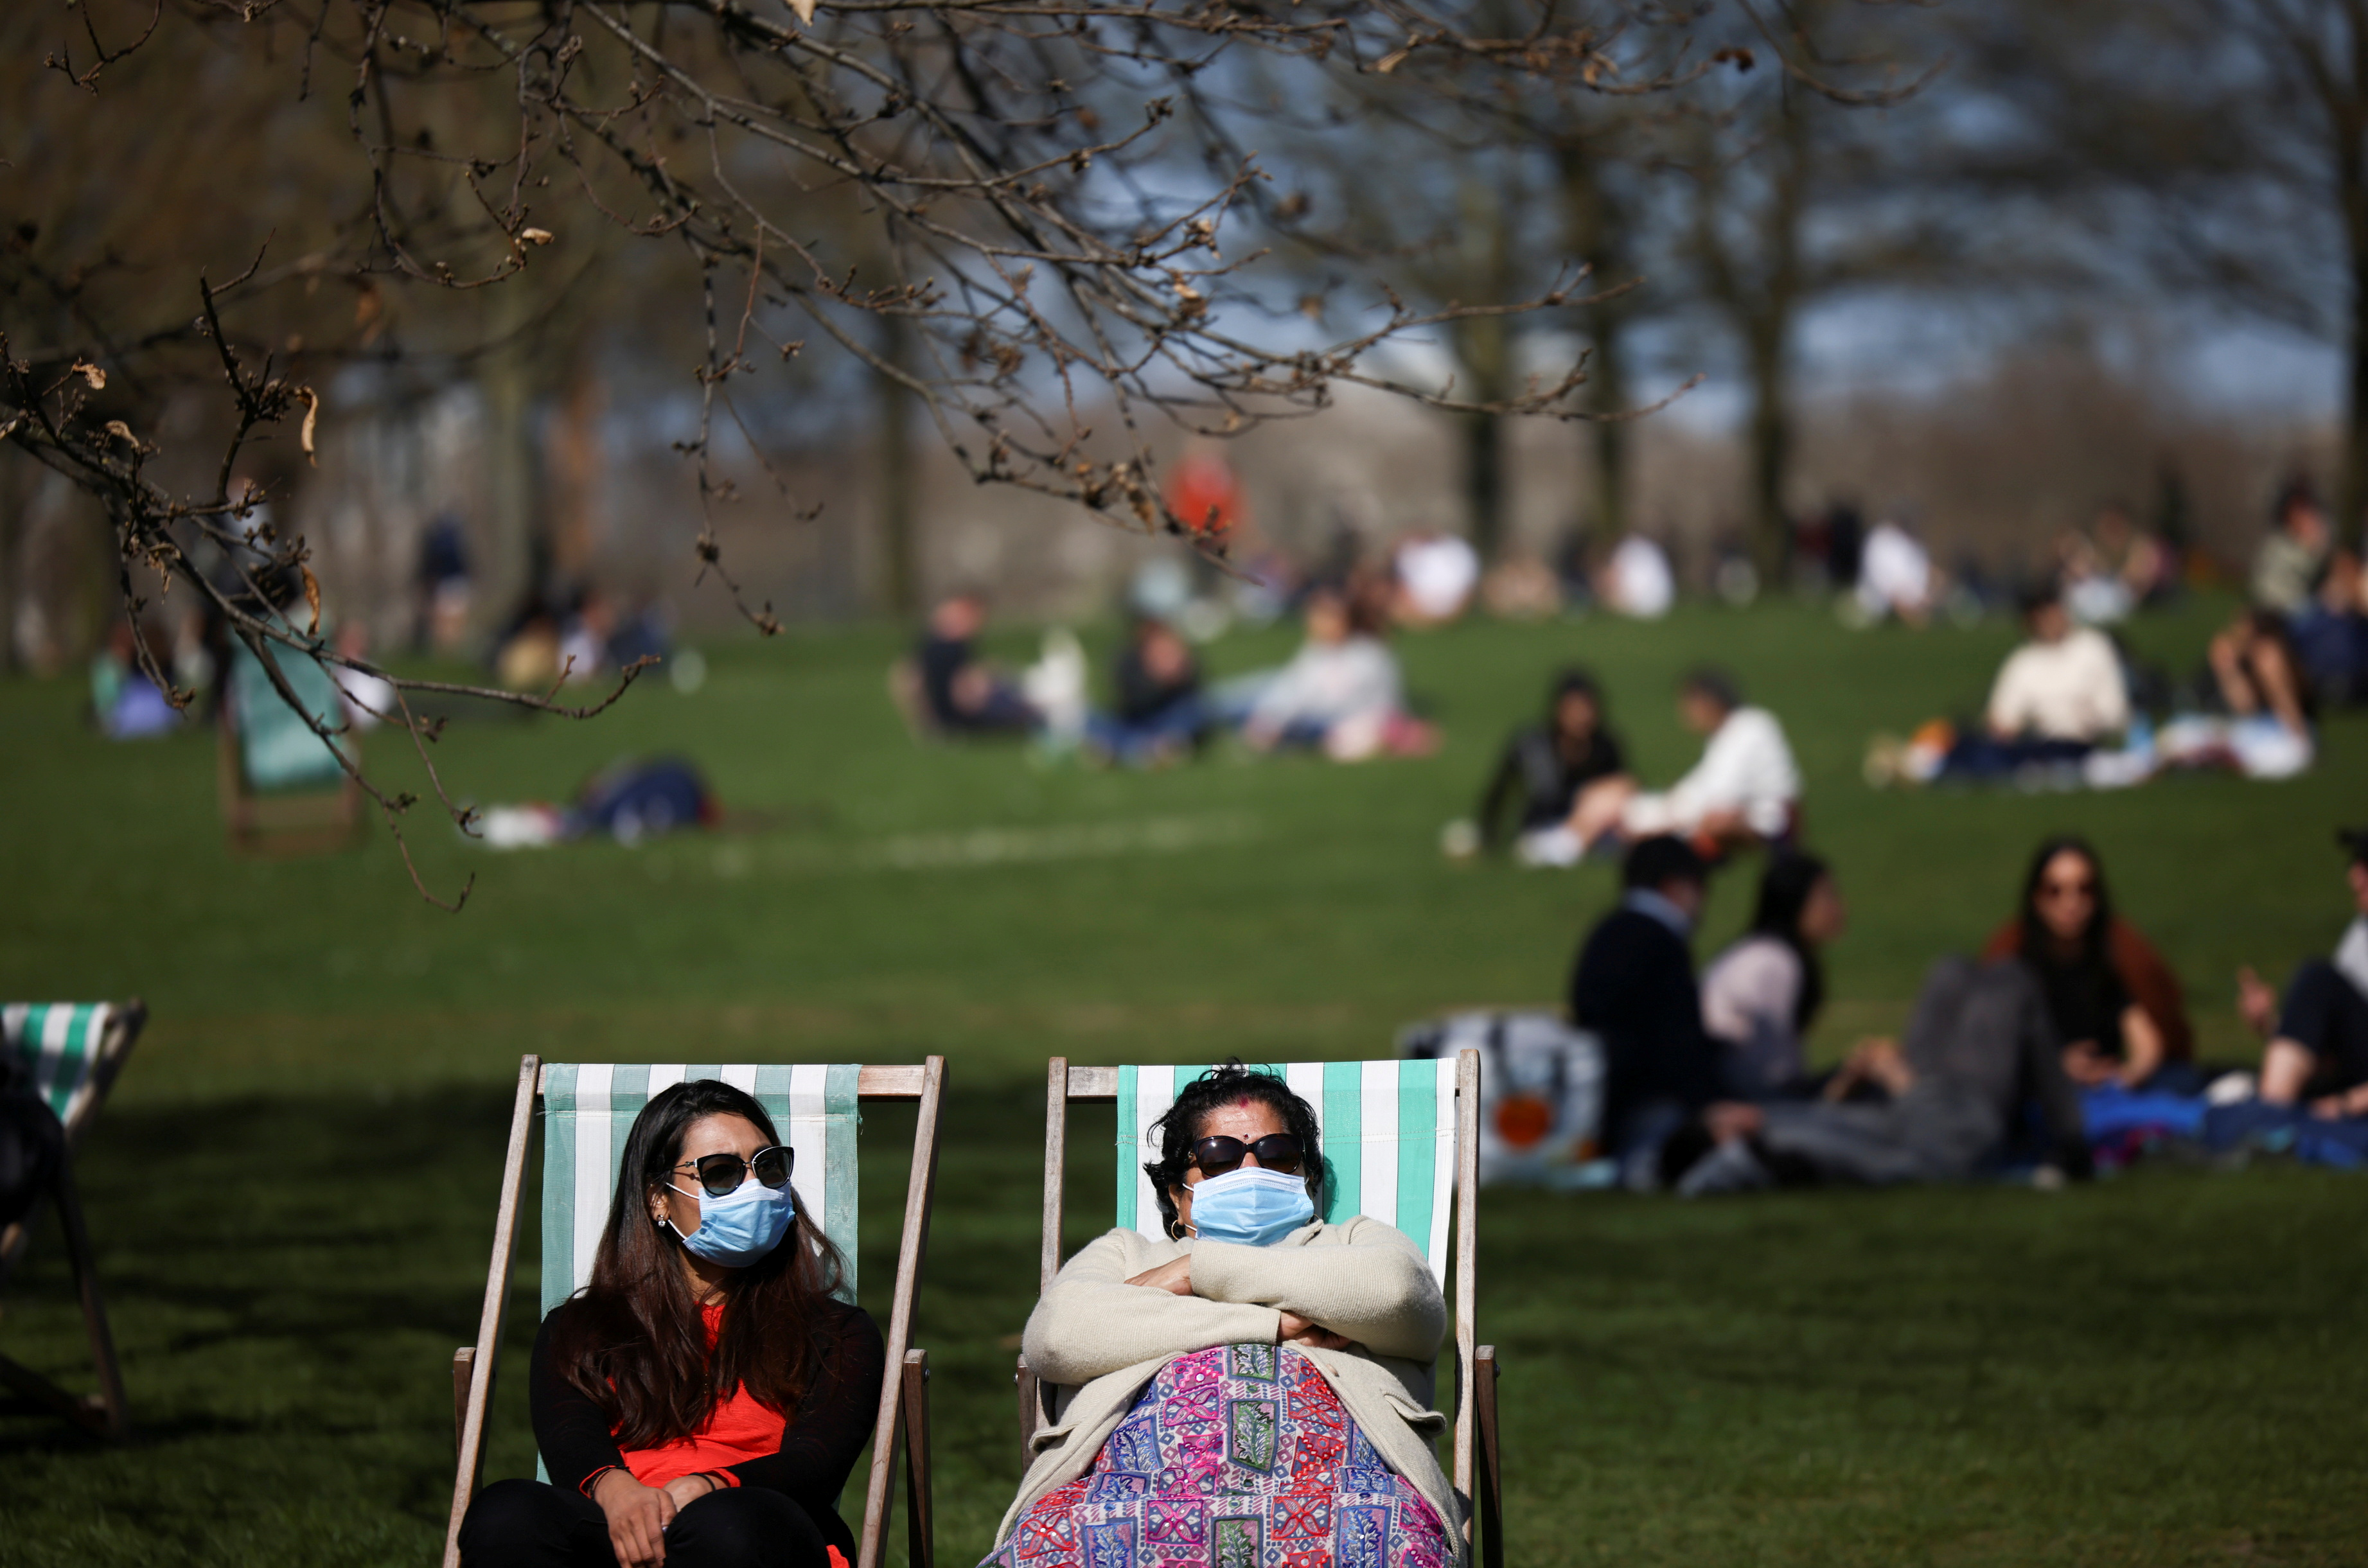 People relax during sunny weather in Hyde Park, amid the coronavirus disease (COVID-19) outbreak, in London, Britain, April 4, 2021. REUTERS/Henry Nicholls/File Photo